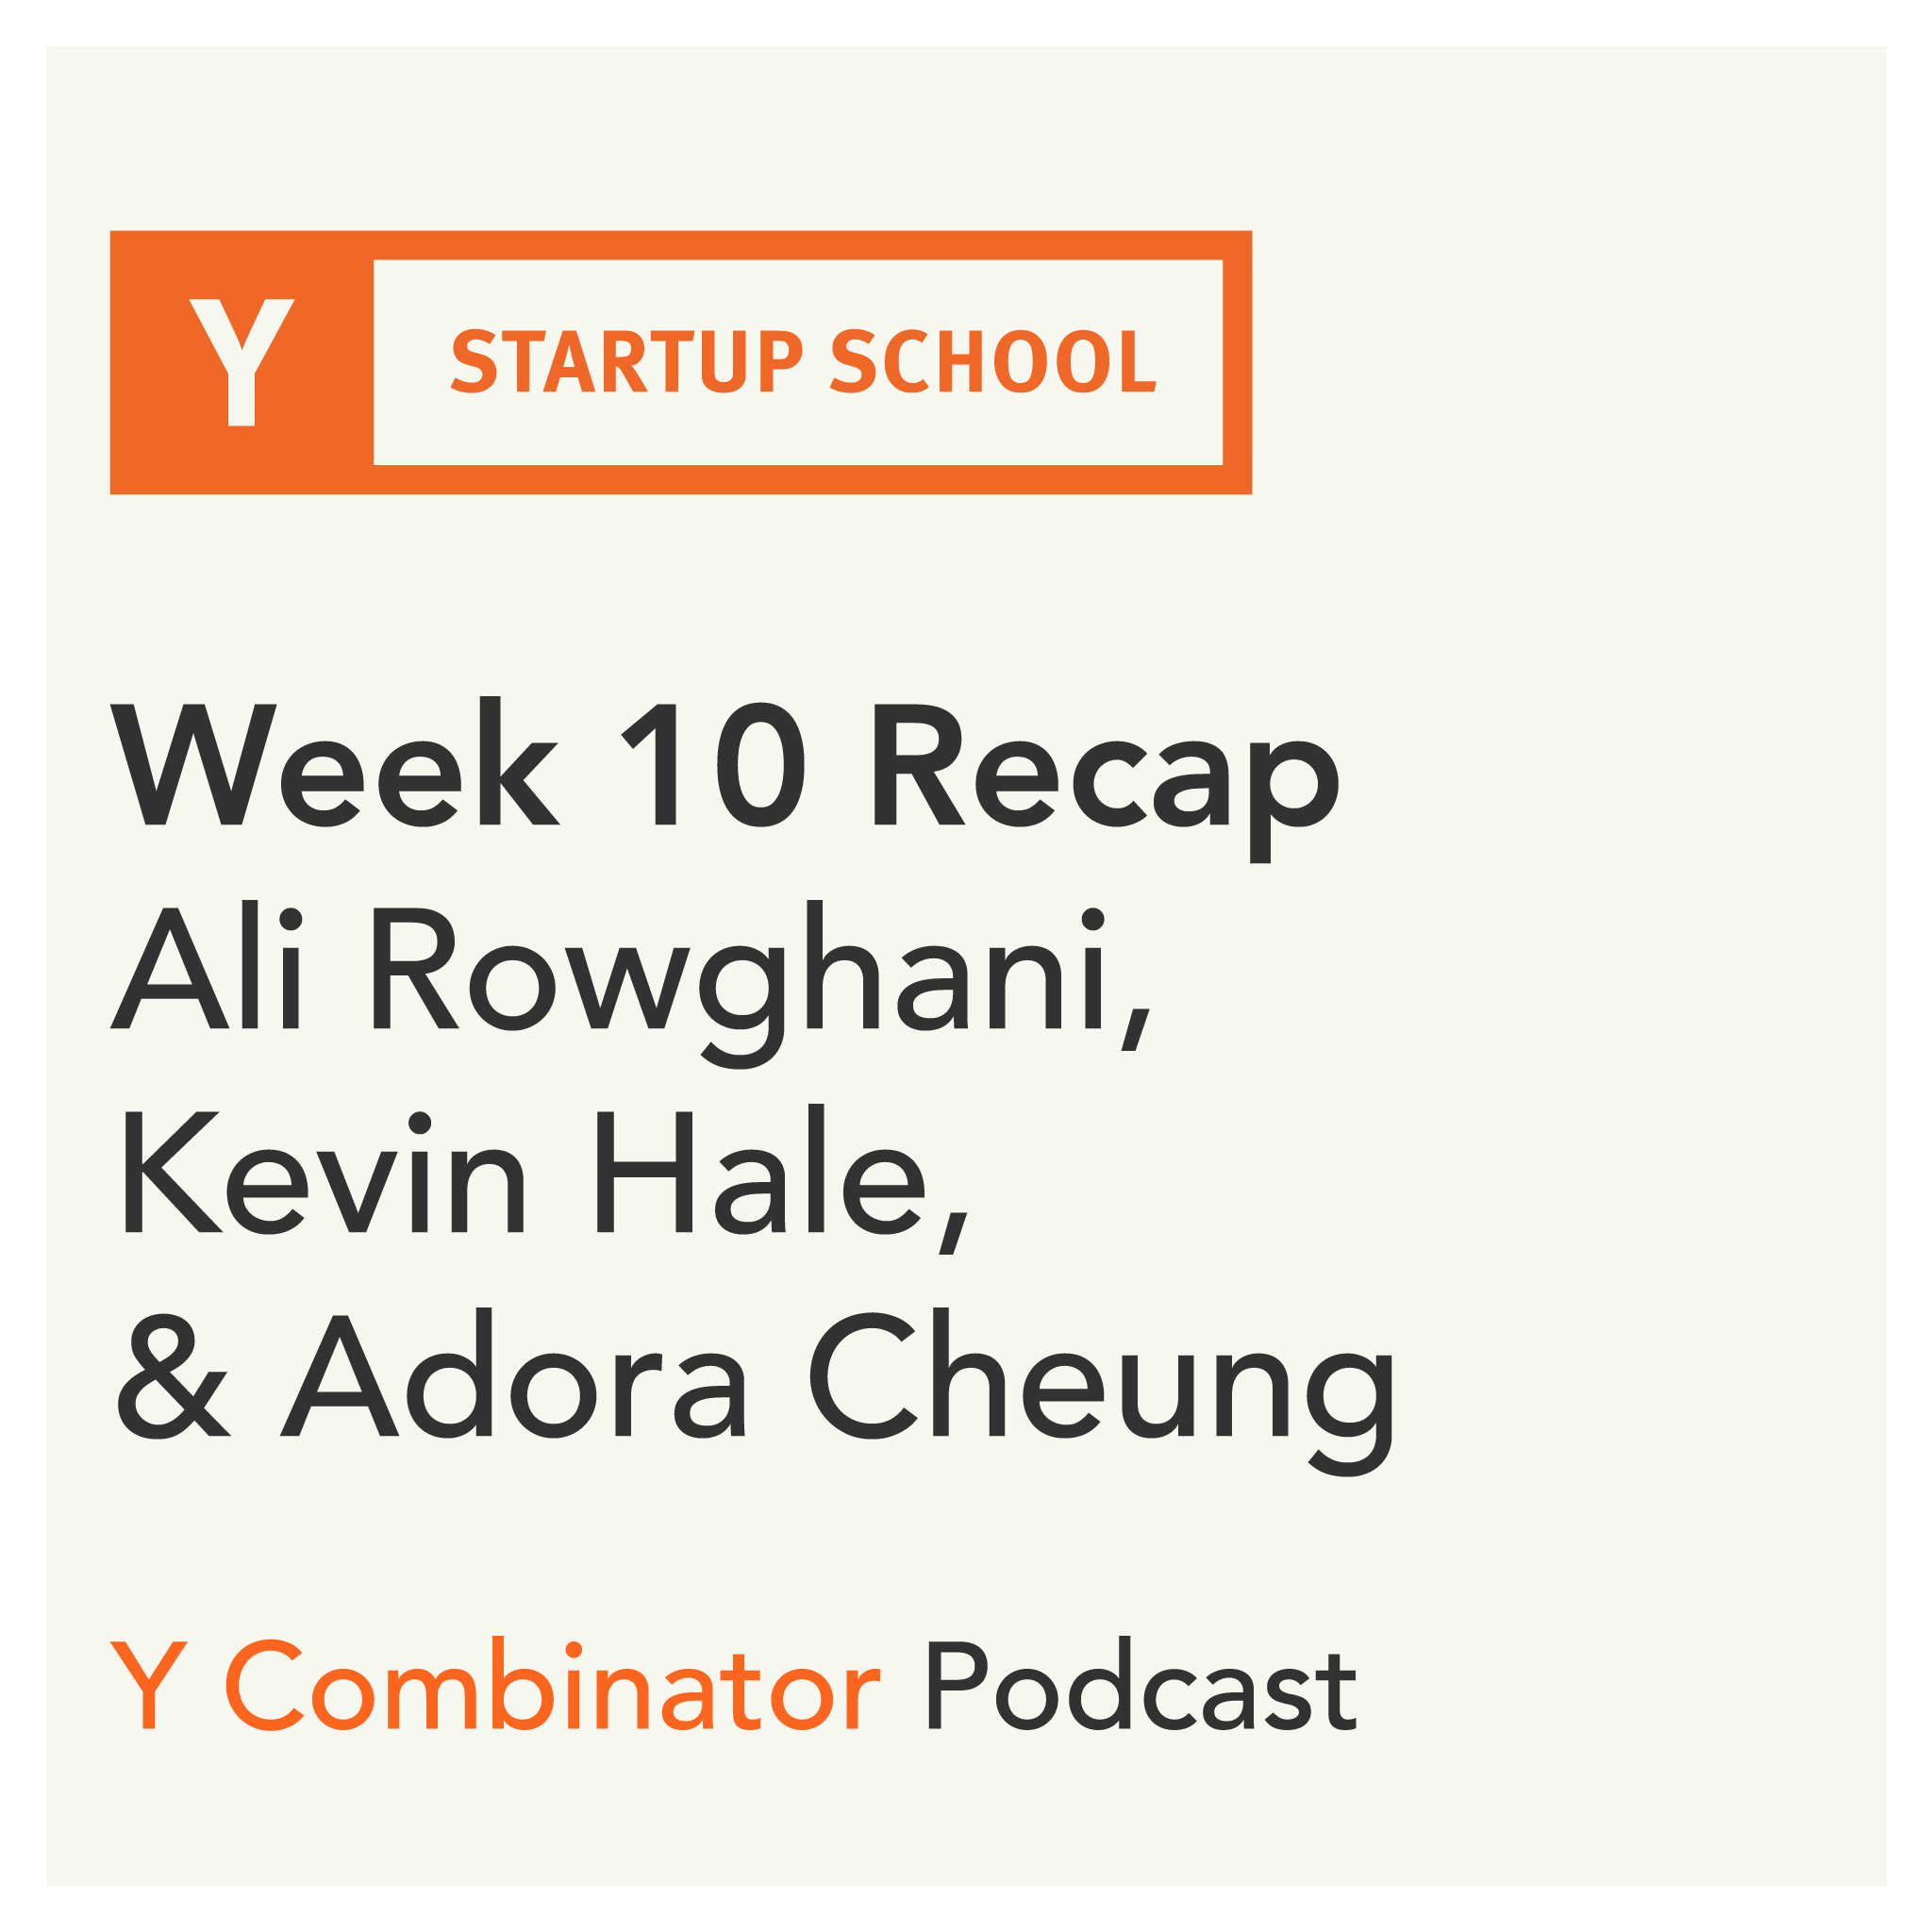 #151 - Startup School Week 10 Recap - Ali Rowghani on How to Lead and Kevin Hale and Adora Cheung on Startup School 2019 by the Numbers